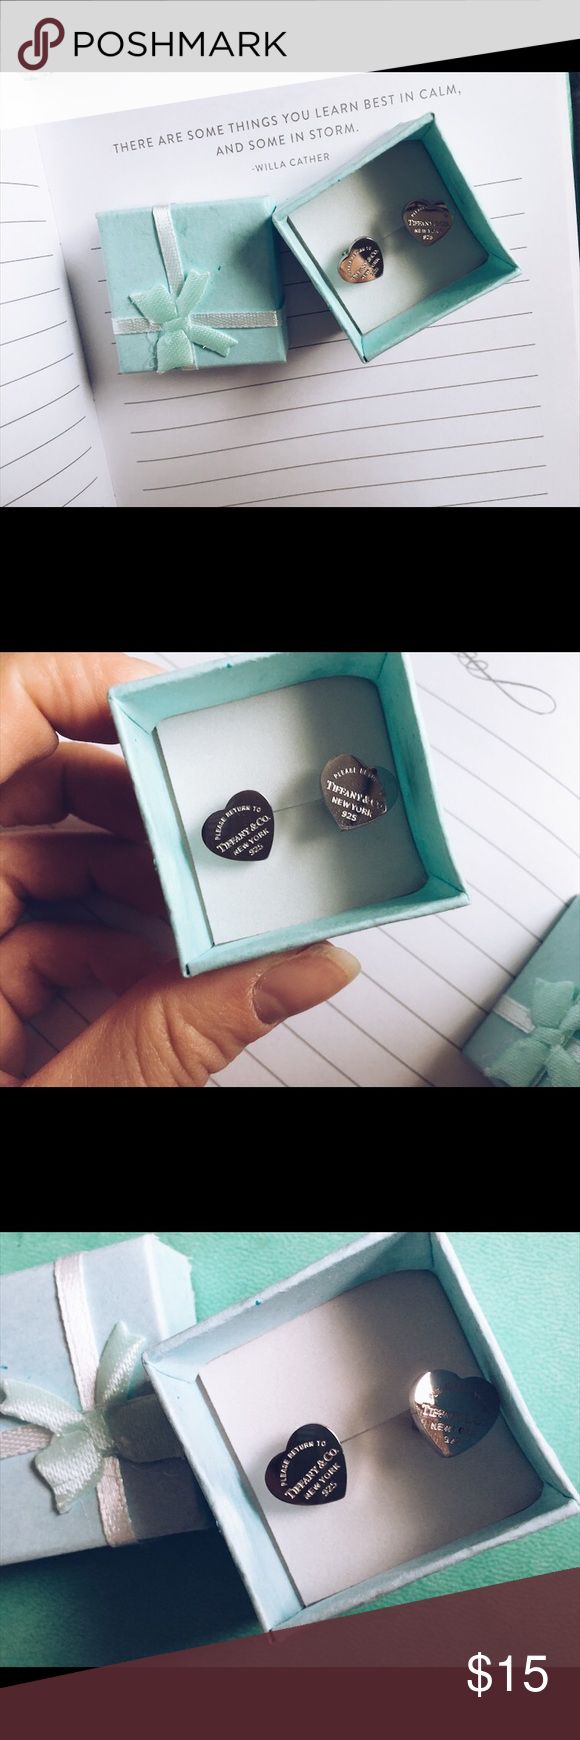 Heart Earrings High Quality Replica Tiffany Co Comes With Gift Box